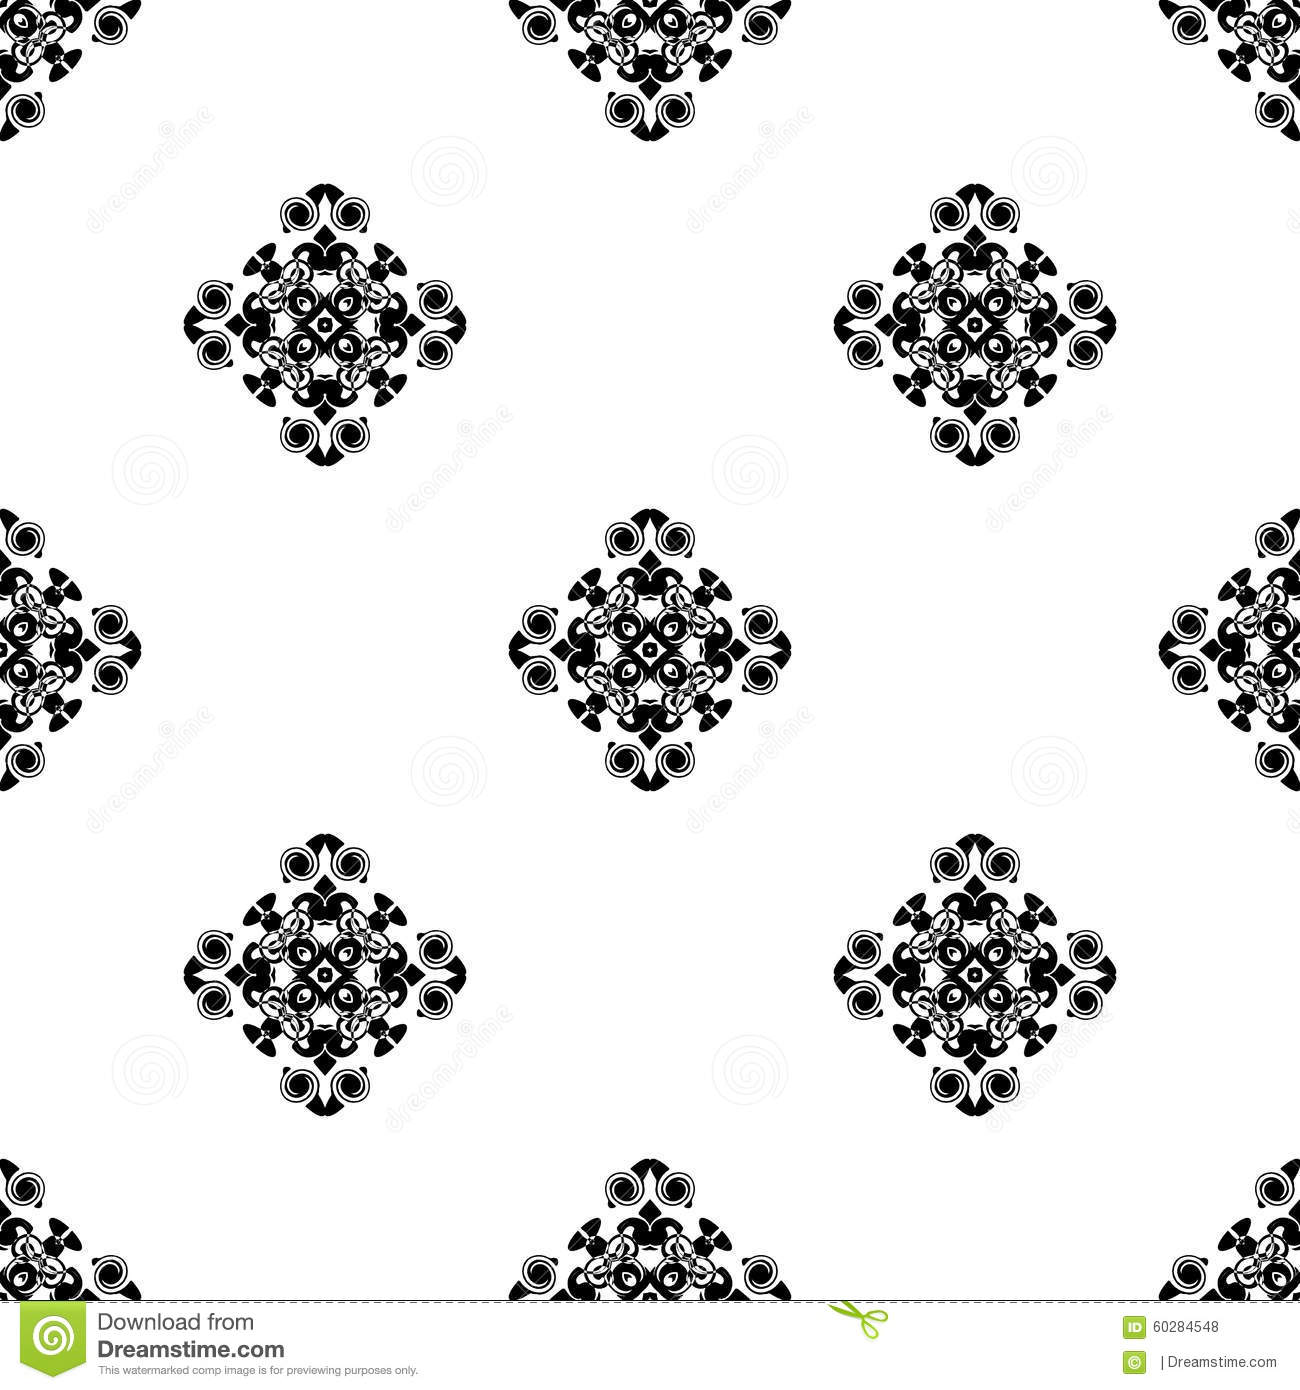 vector seamless pattern  repeating geometric  black and